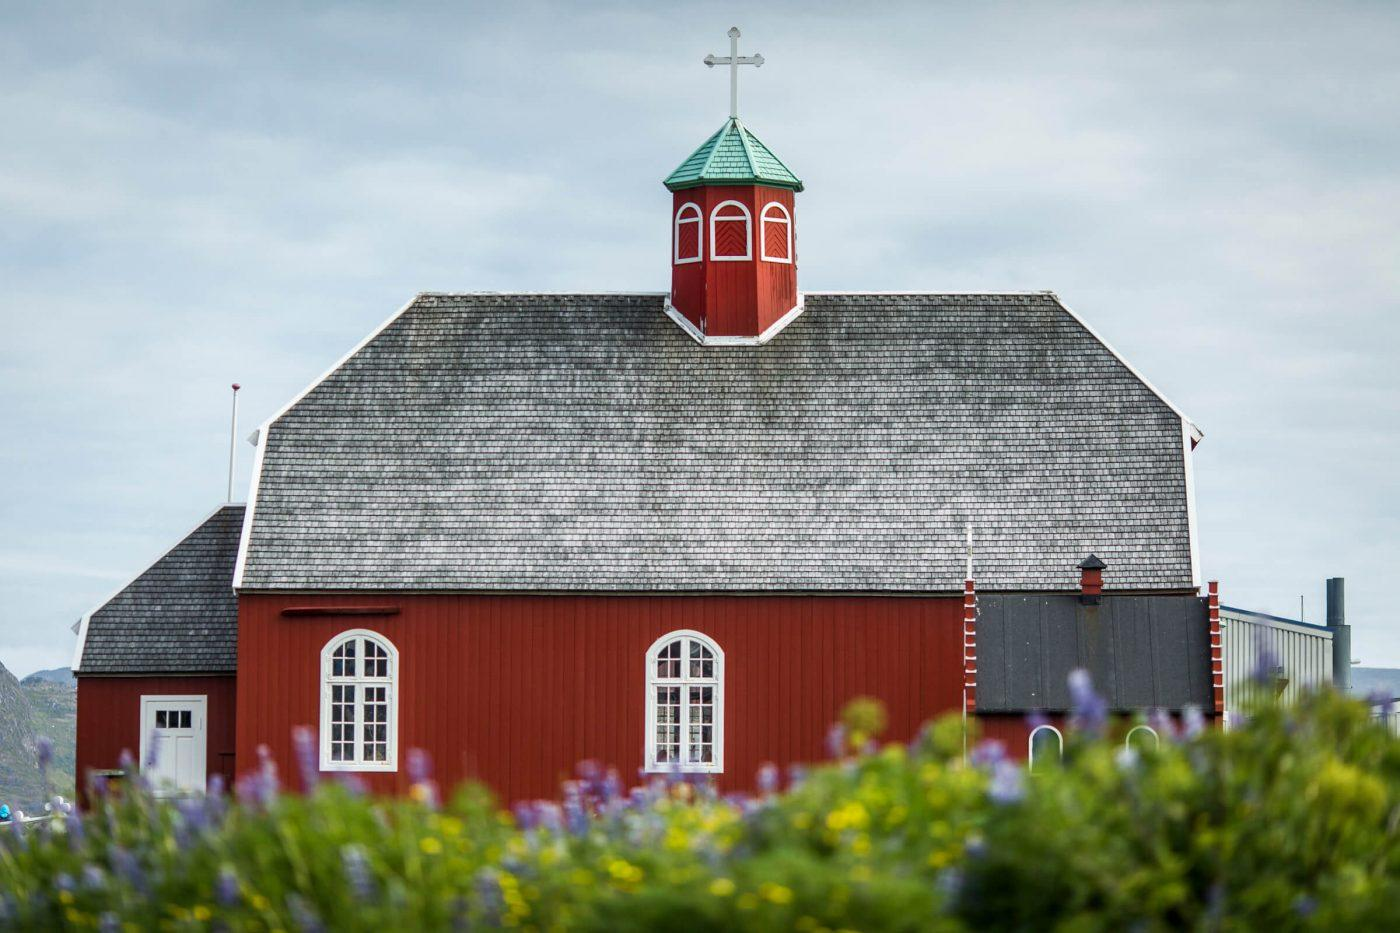 The old church in downtown Qaqortoq in South Greenland. Photo by Mads Pihl - Visit Greenland